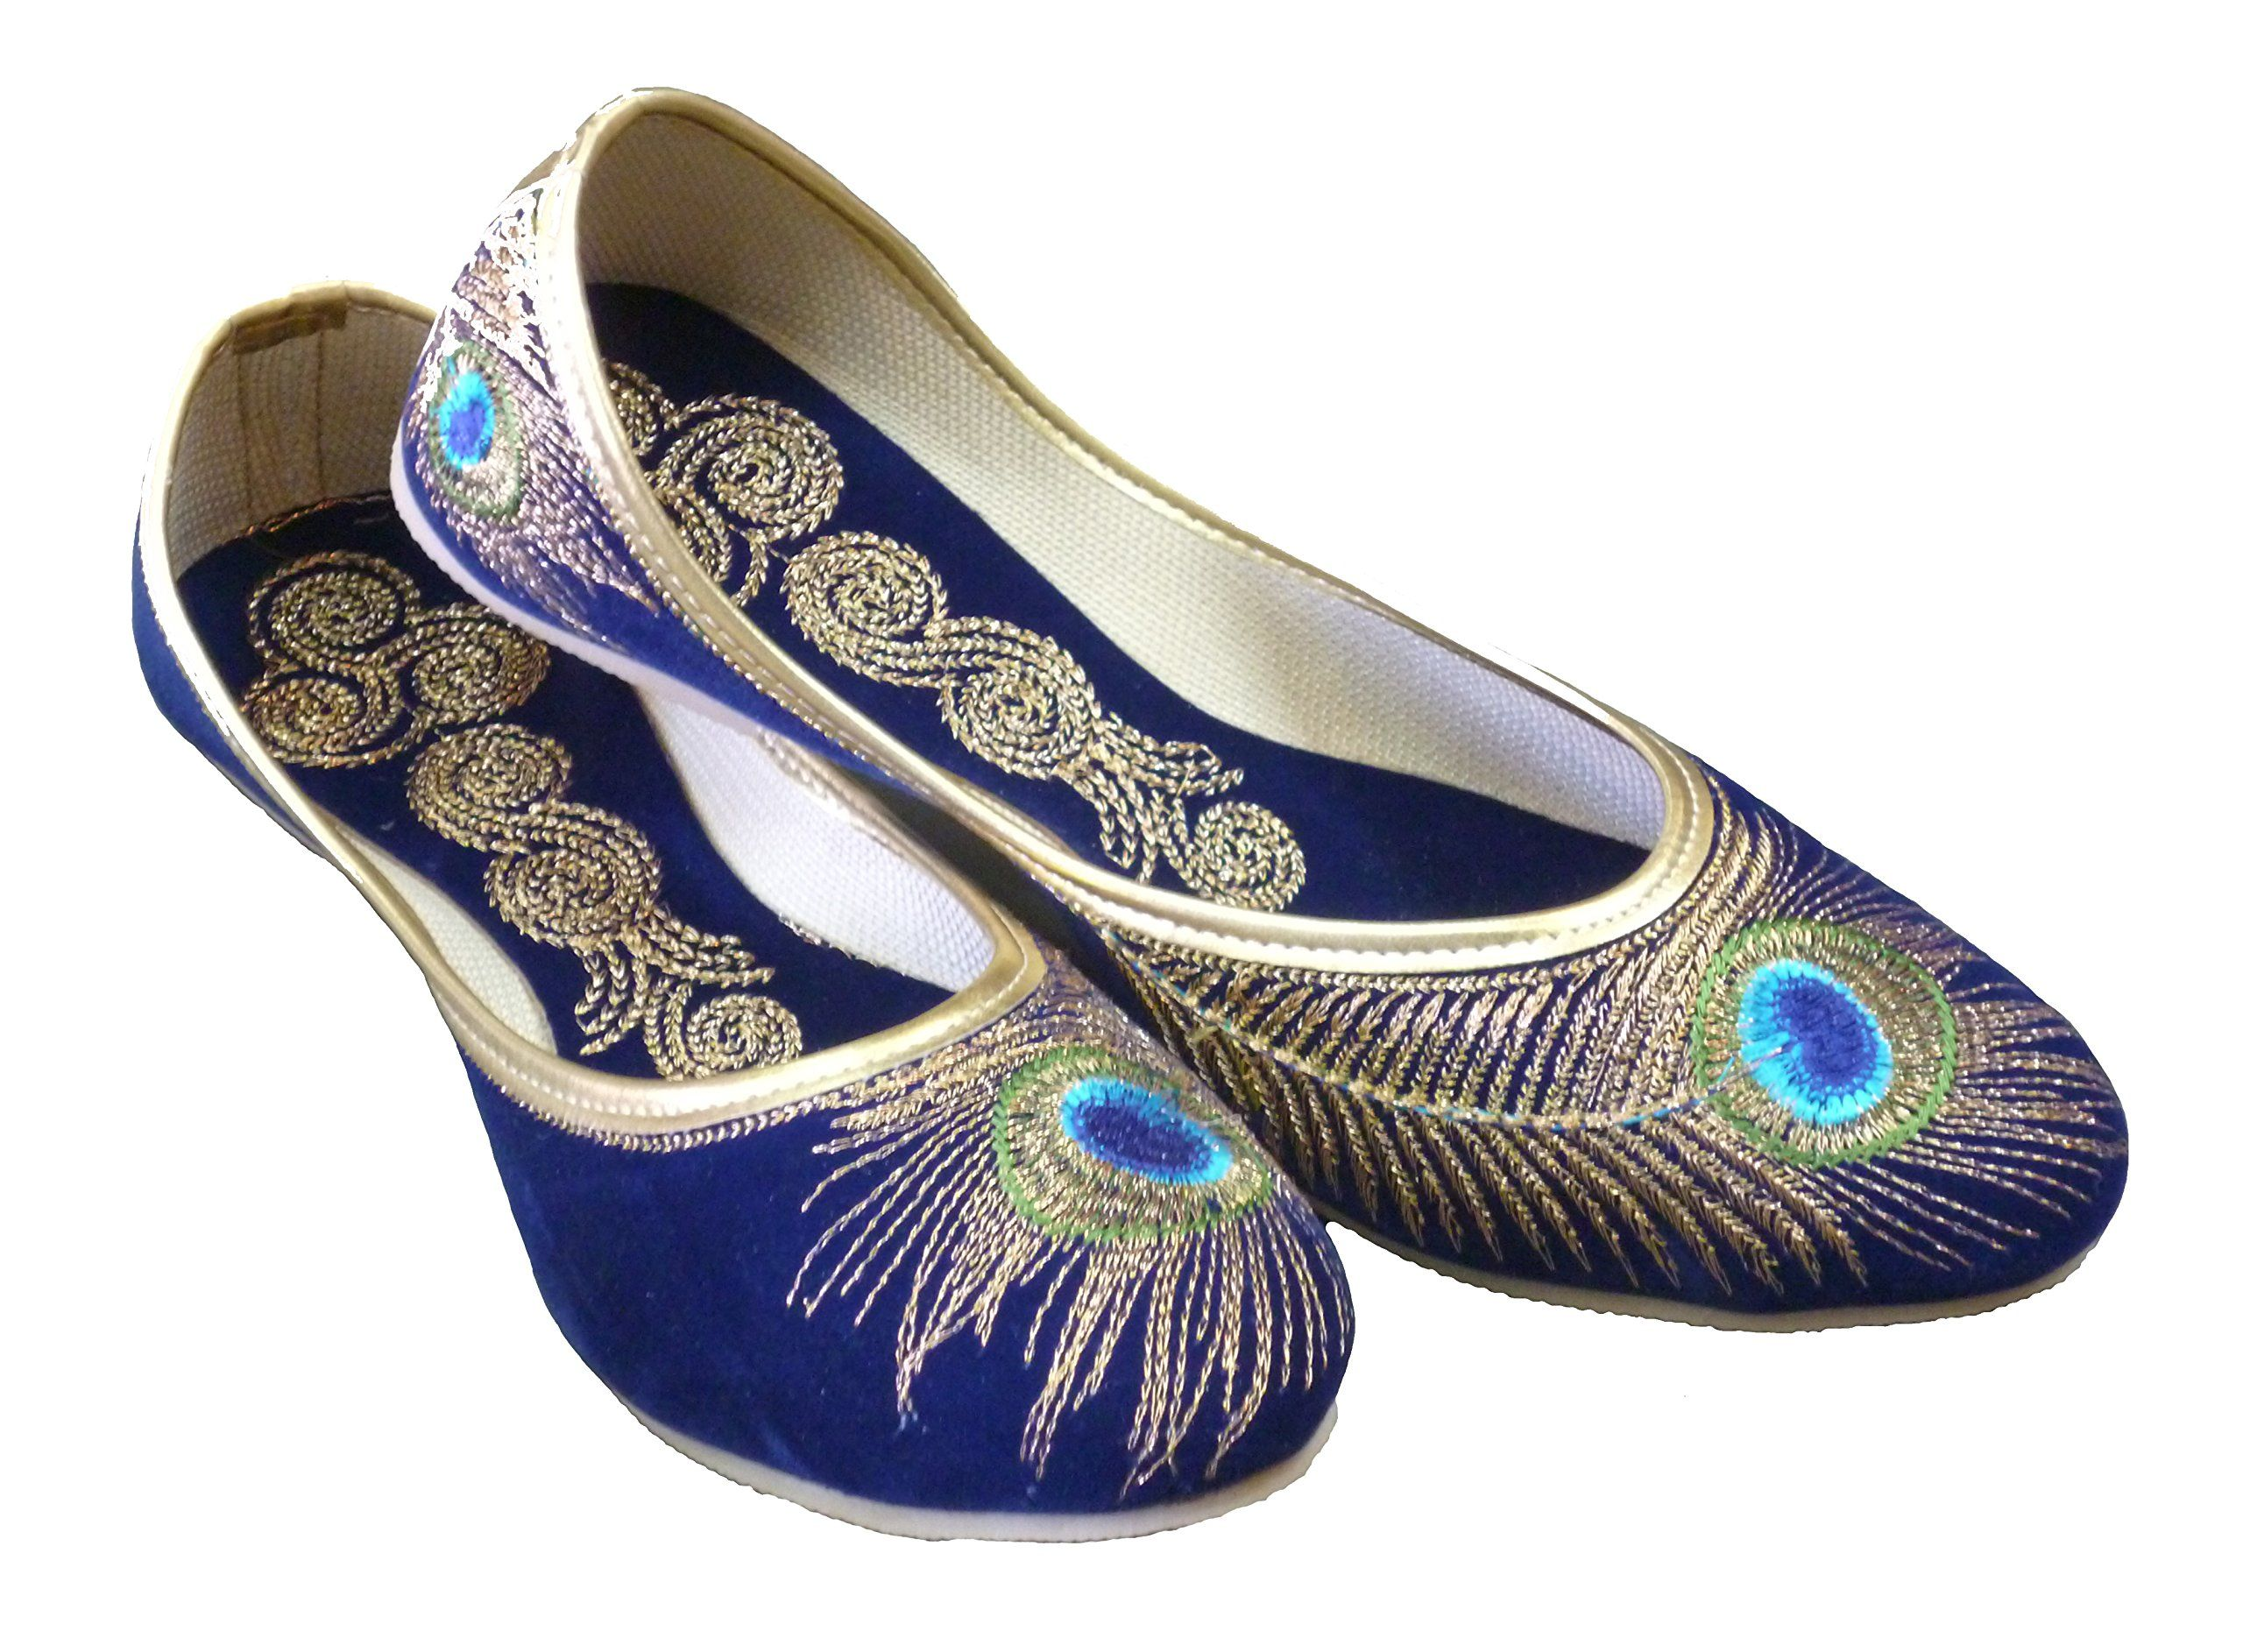 8570446466e4b Amazon.com: Handcrafted Luxury Women's Velvet Khussa Shoe: Clothing ...